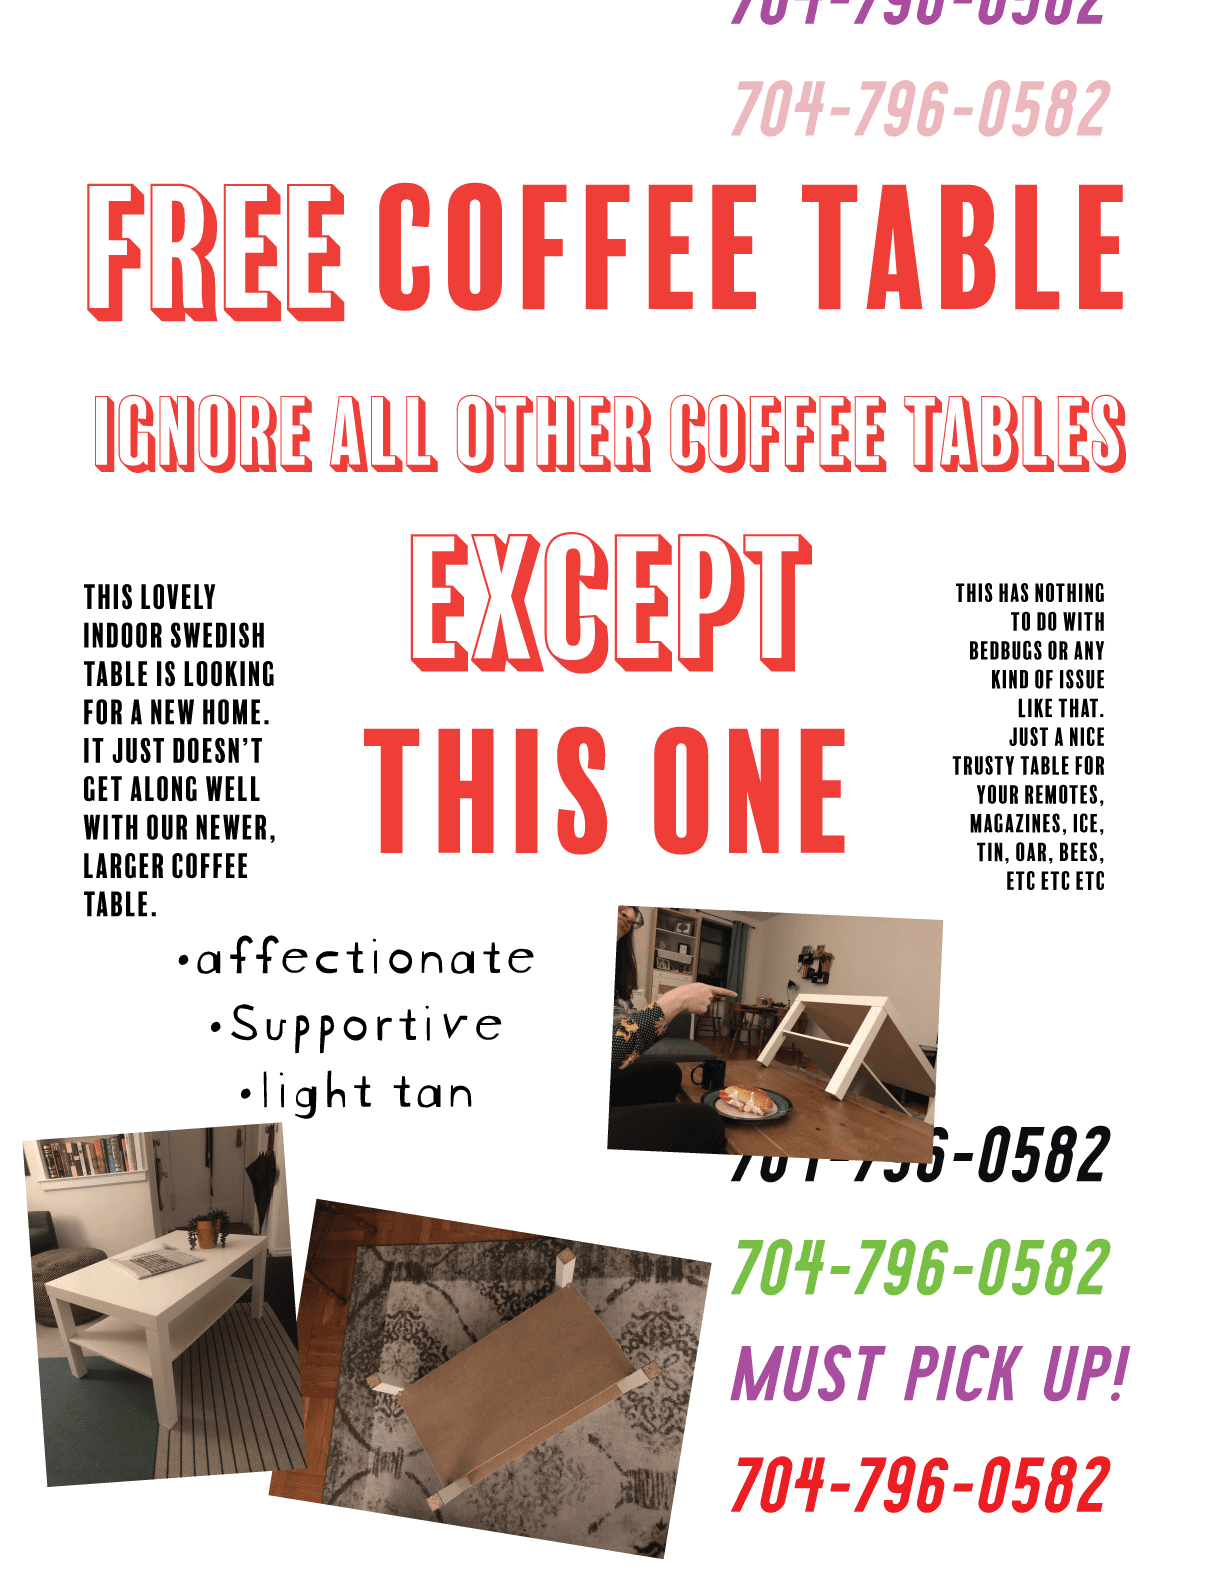 Free_Coffee_Table.png